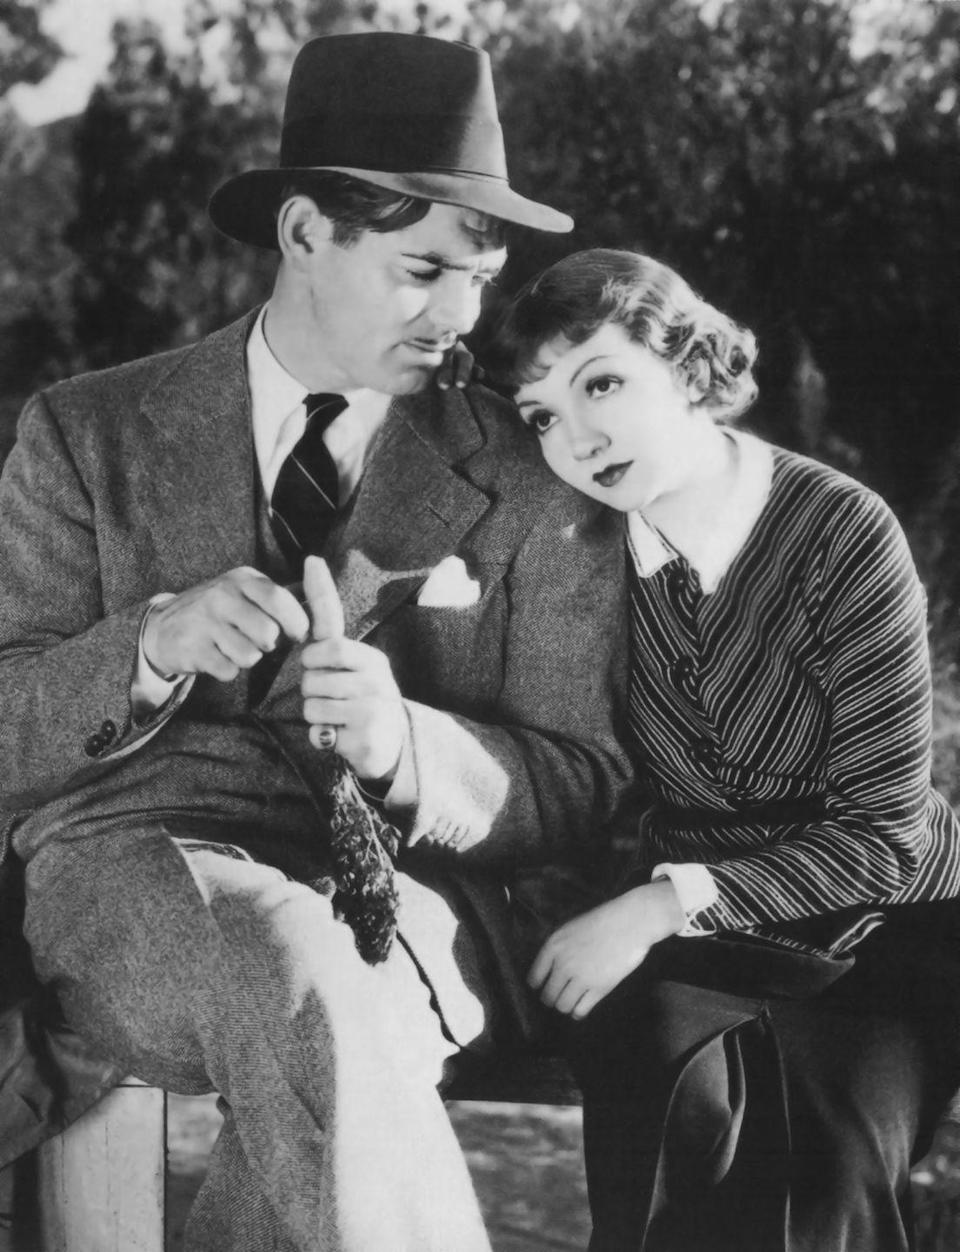 """<p>If you consider yourself a rom-com aficionado, then you'll especially appreciate one of the earliest and most defining installments of the genre. Clark Gable and Claudette Colbert play a wise-cracking reporter and a spoiled heiress who meet on a bus headed for New York, and begin a journey of non-stop banter. The dialogue in <em>It Happened One Night </em>crackles, proving with each sentence that Ellie and Peter are a match. In addition to being a delight, <em>It Happened One Night </em>is also the first movie to win the """"big five"""" awards at the Academy Awards.</p><p><a class=""""link rapid-noclick-resp"""" href=""""https://www.amazon.com/gp/video/detail/amzn1.dv.gti.4aa9f75c-9968-b5a5-6262-1177a415a141?autoplay=1&ref_=atv_cf_strg_wb&tag=syn-yahoo-20&ascsubtag=%5Bartid%7C10072.g.33383086%5Bsrc%7Cyahoo-us"""" rel=""""nofollow noopener"""" target=""""_blank"""" data-ylk=""""slk:Watch Now"""">Watch Now</a></p>"""